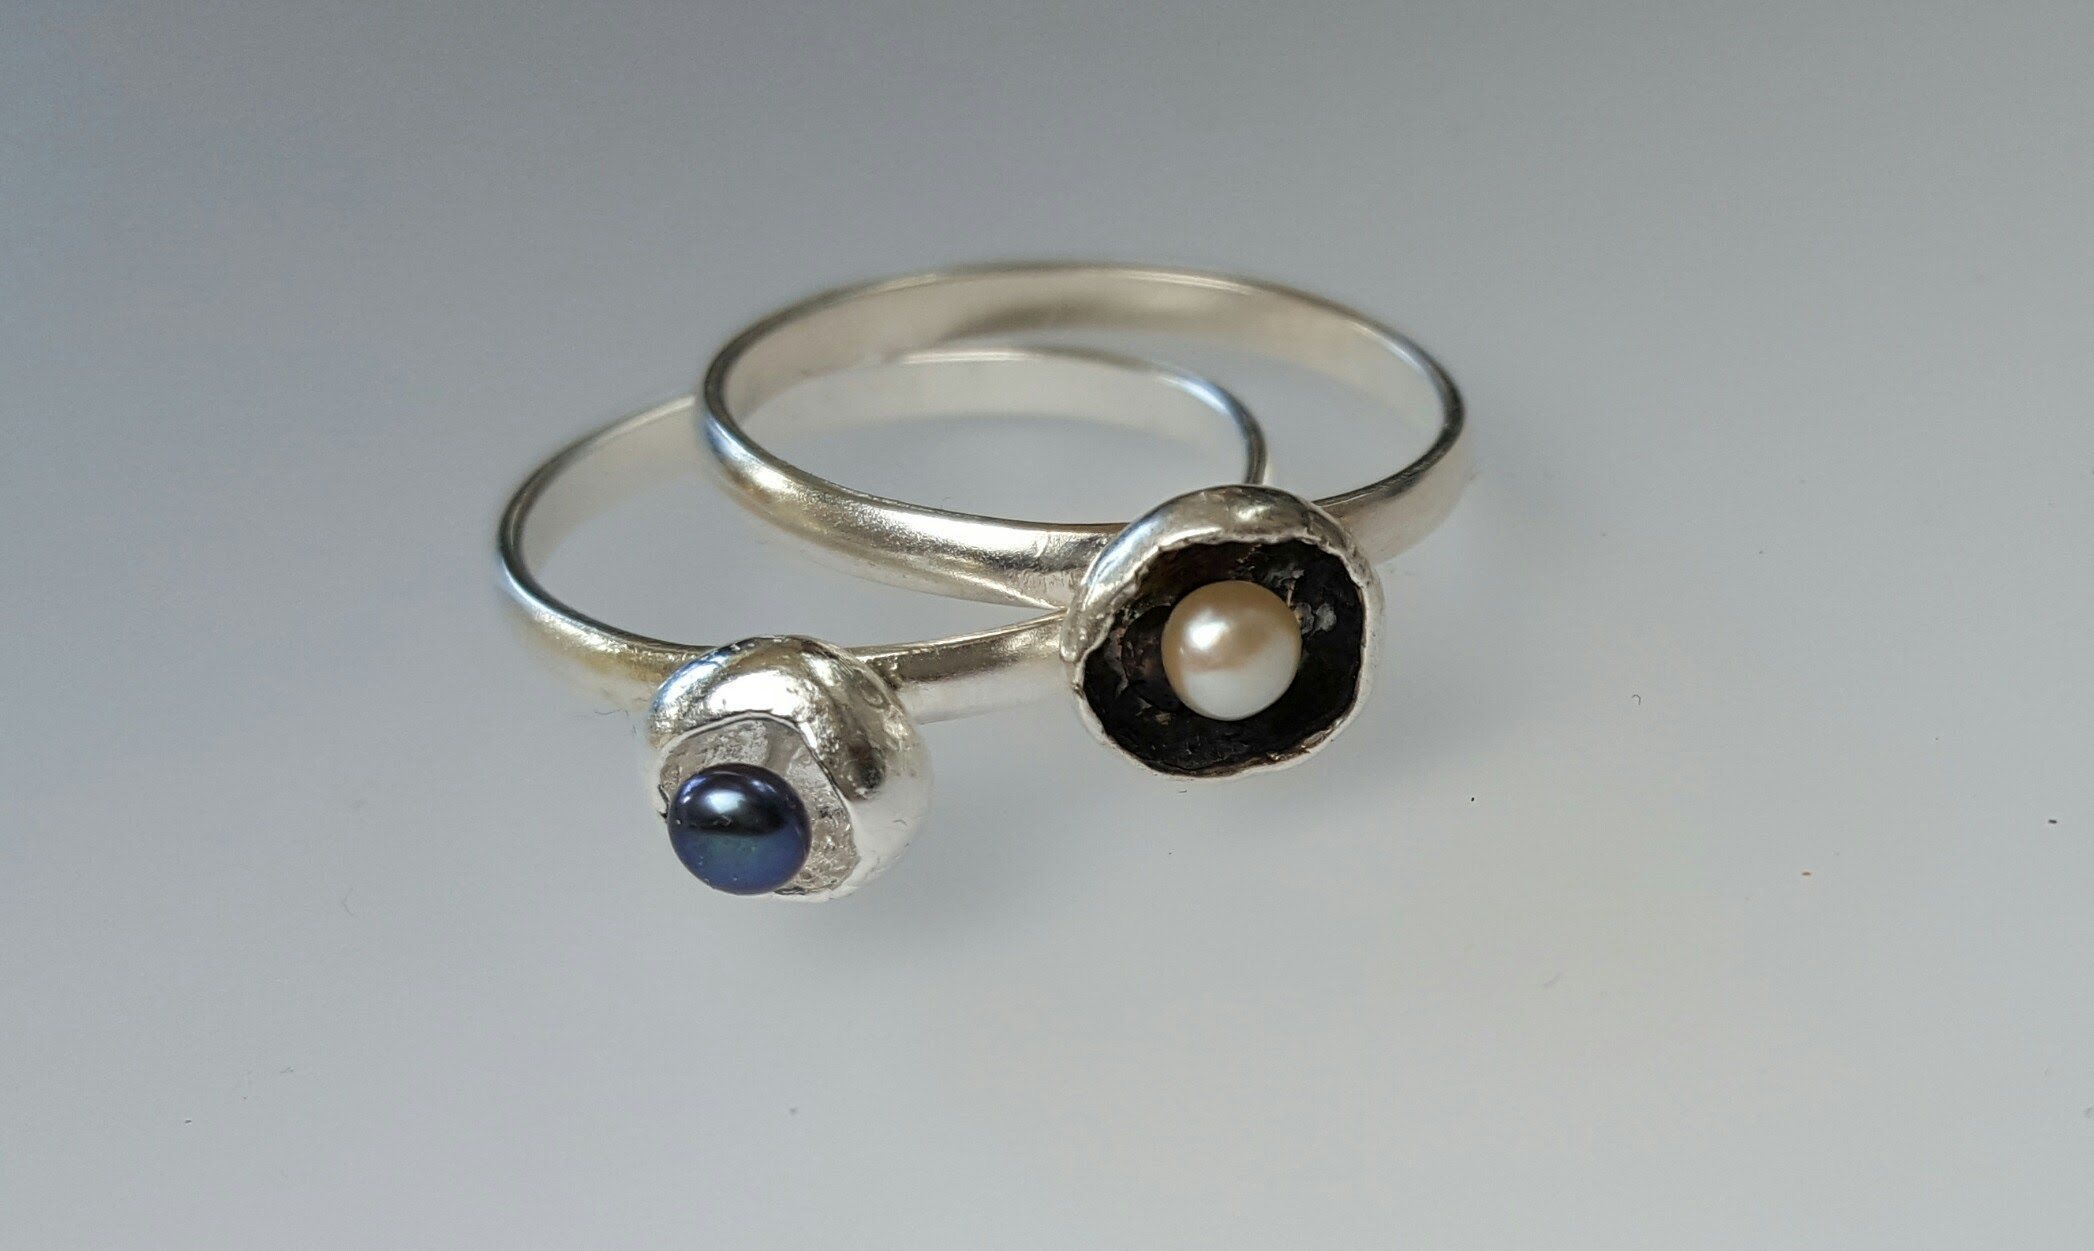 Pod Rings 1 and 3